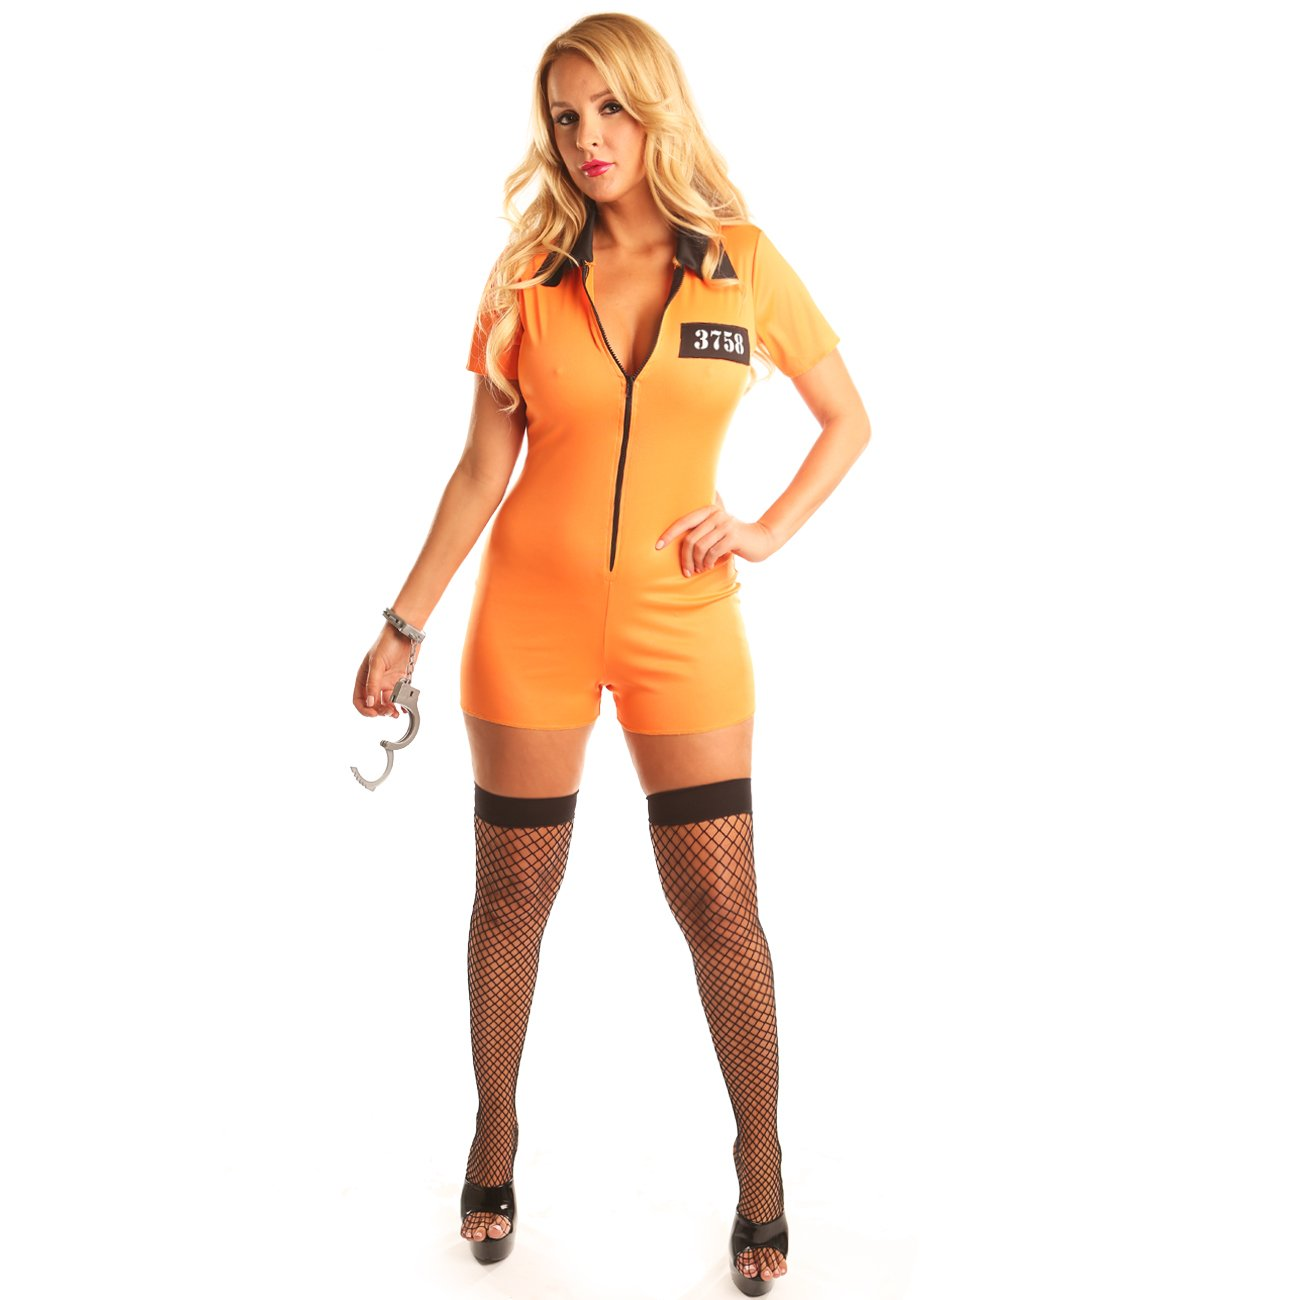 Disiao Sexy Women's Orange Prisoner Costume Set Fancy Ball Party Halloween Christmas Dress Up